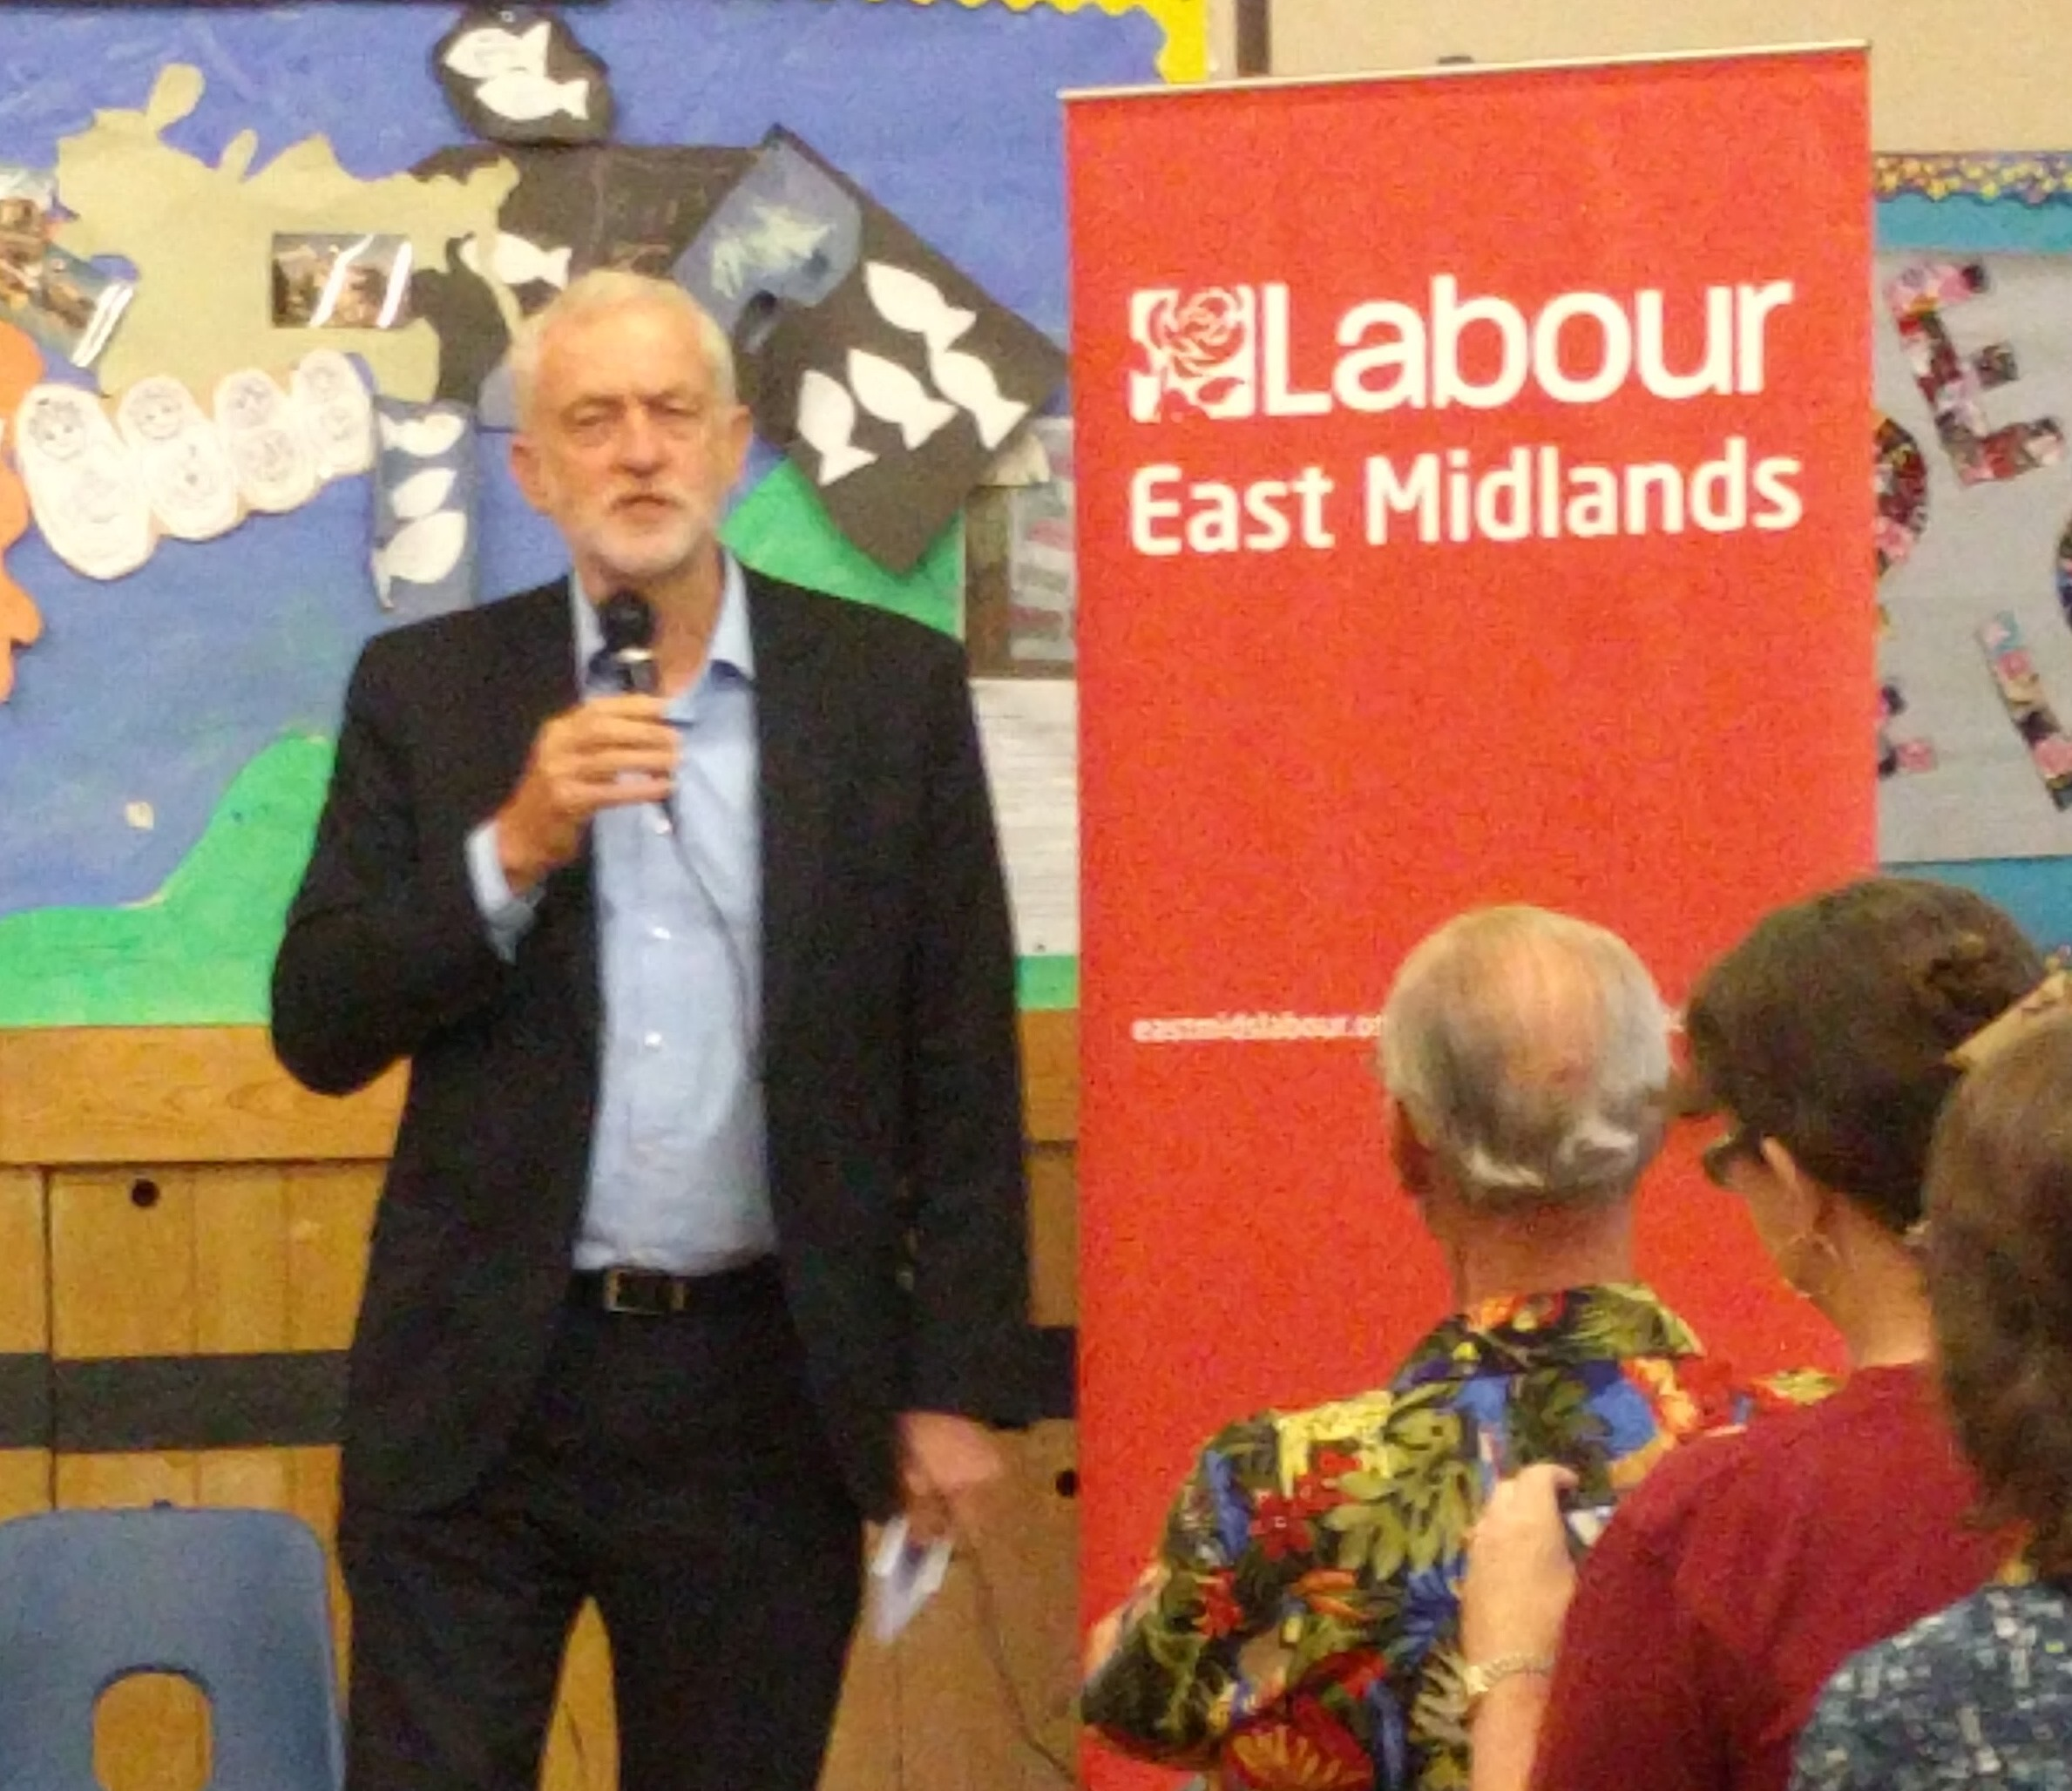 Jeremy Corbyn MP addressing the meeting at Emmanuel Church Hall